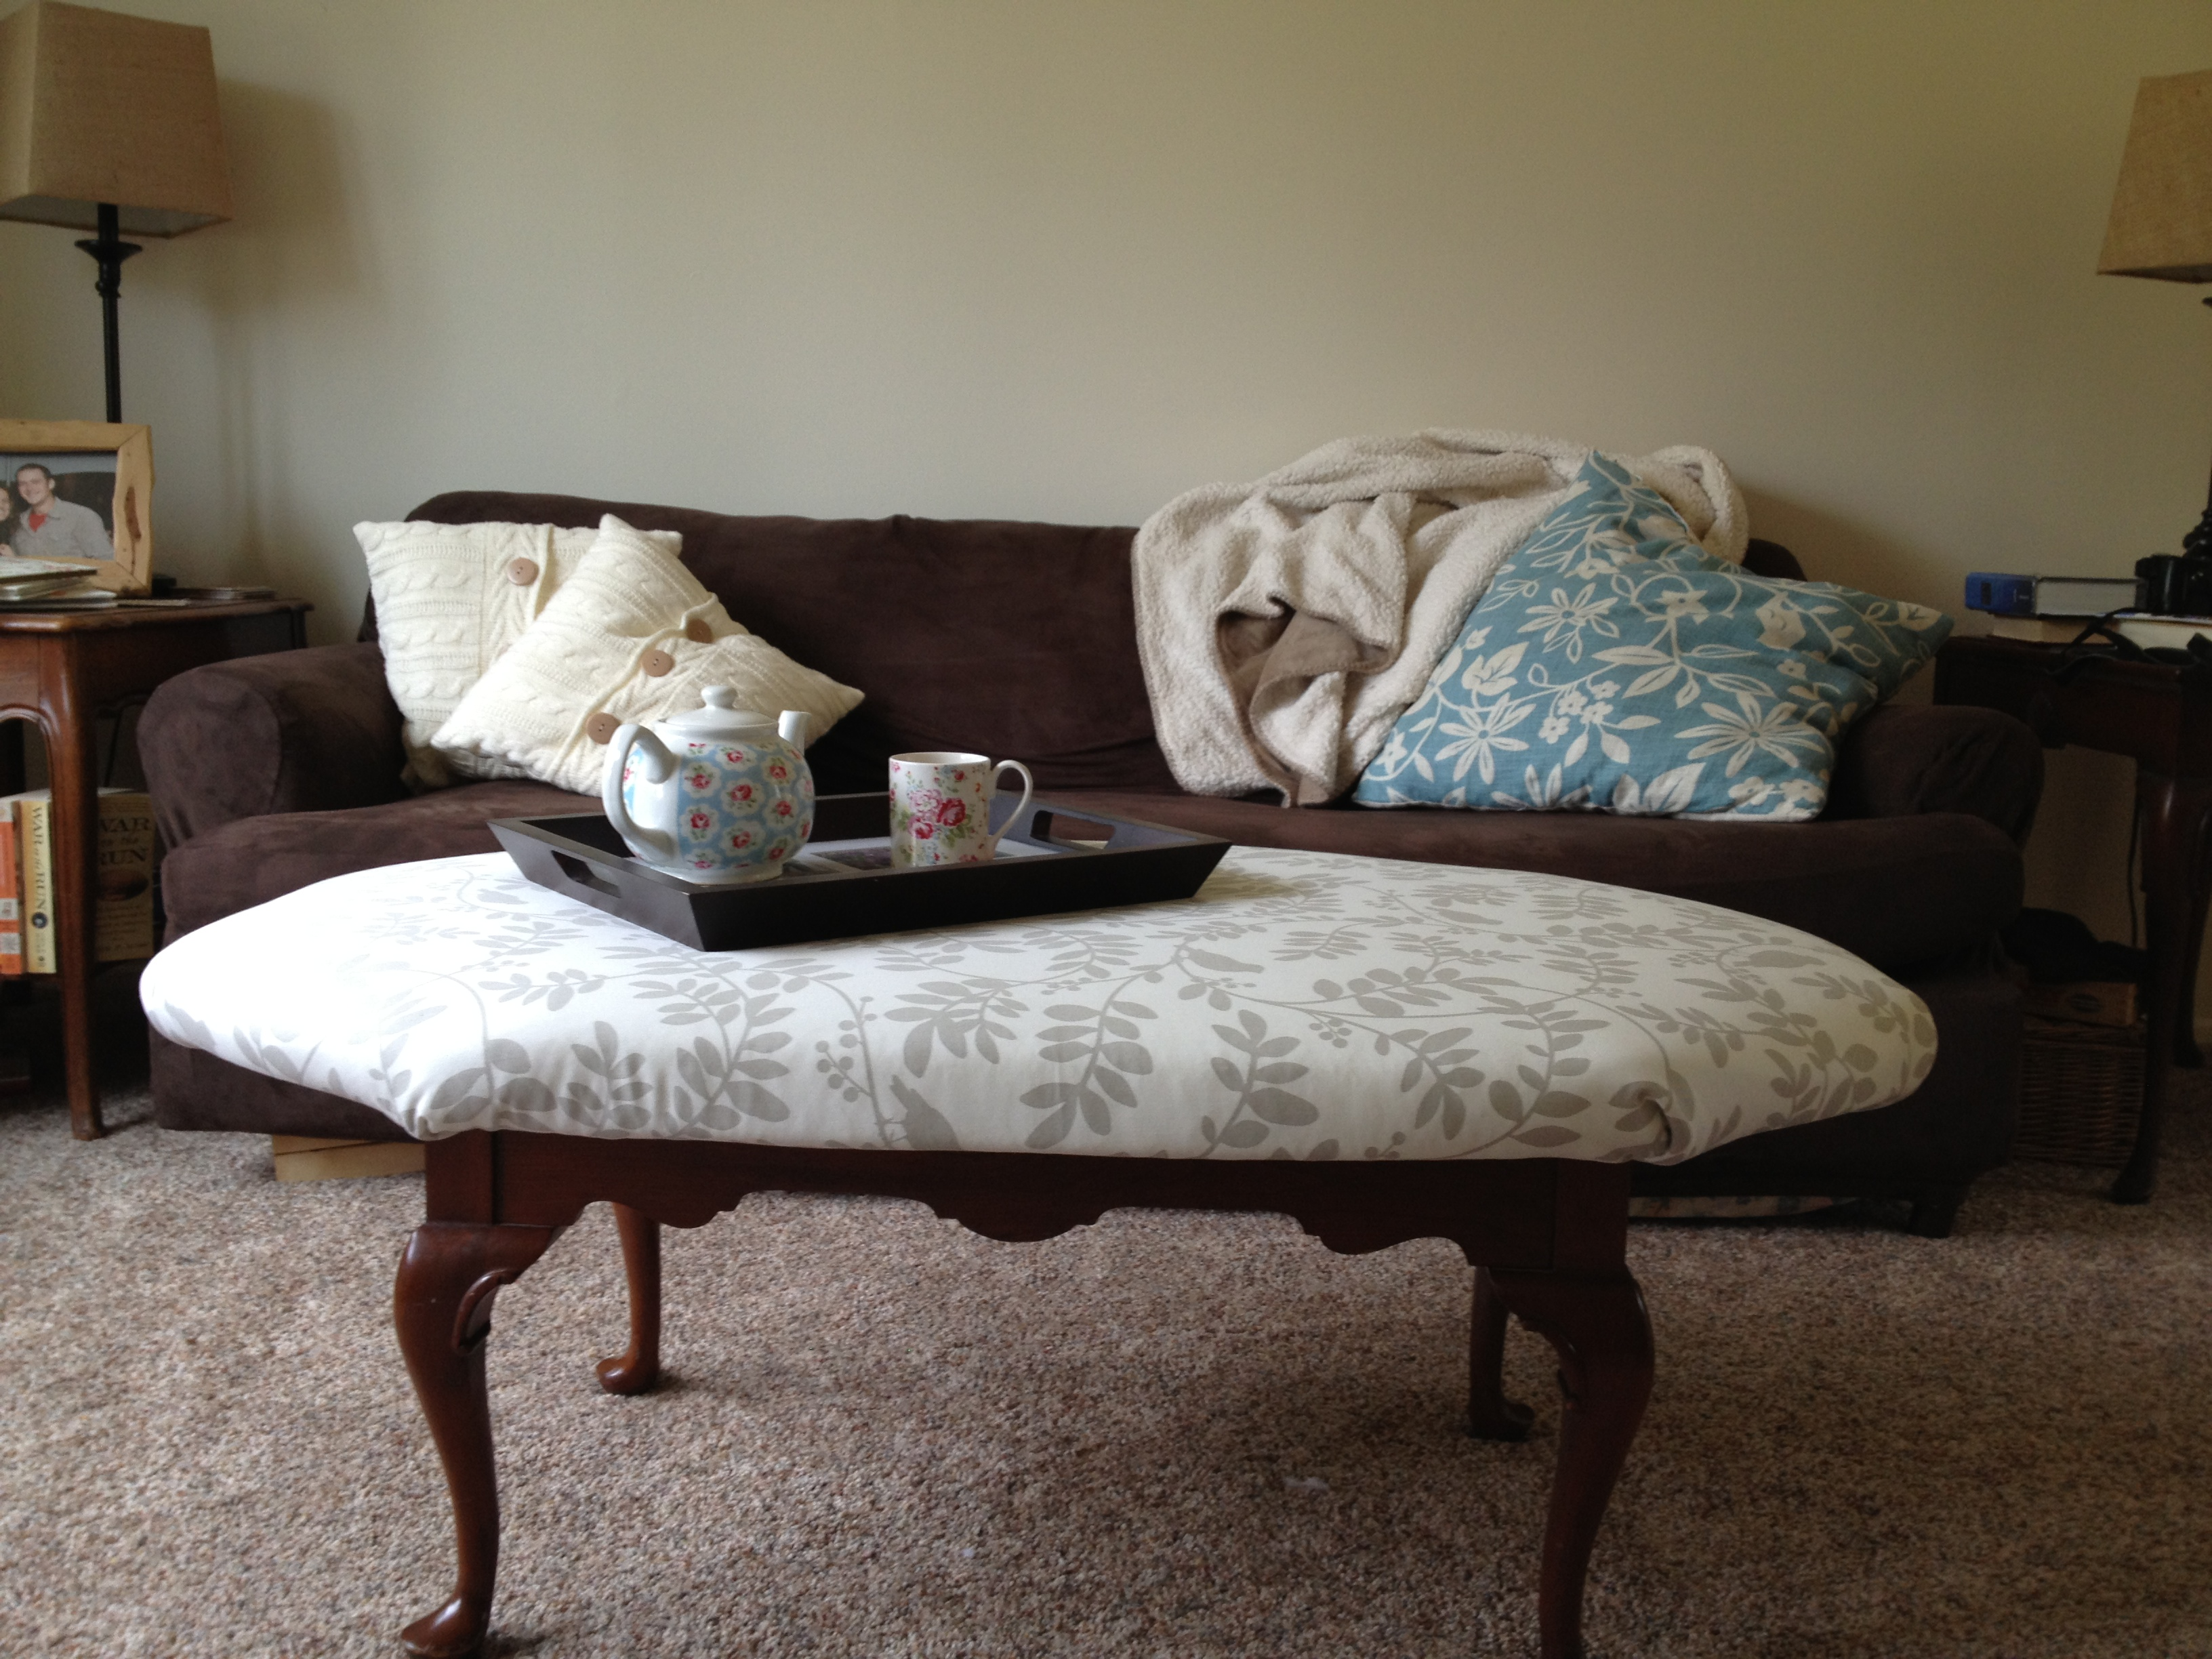 DIY Project: Reupholstered Ottoman Coffee Table